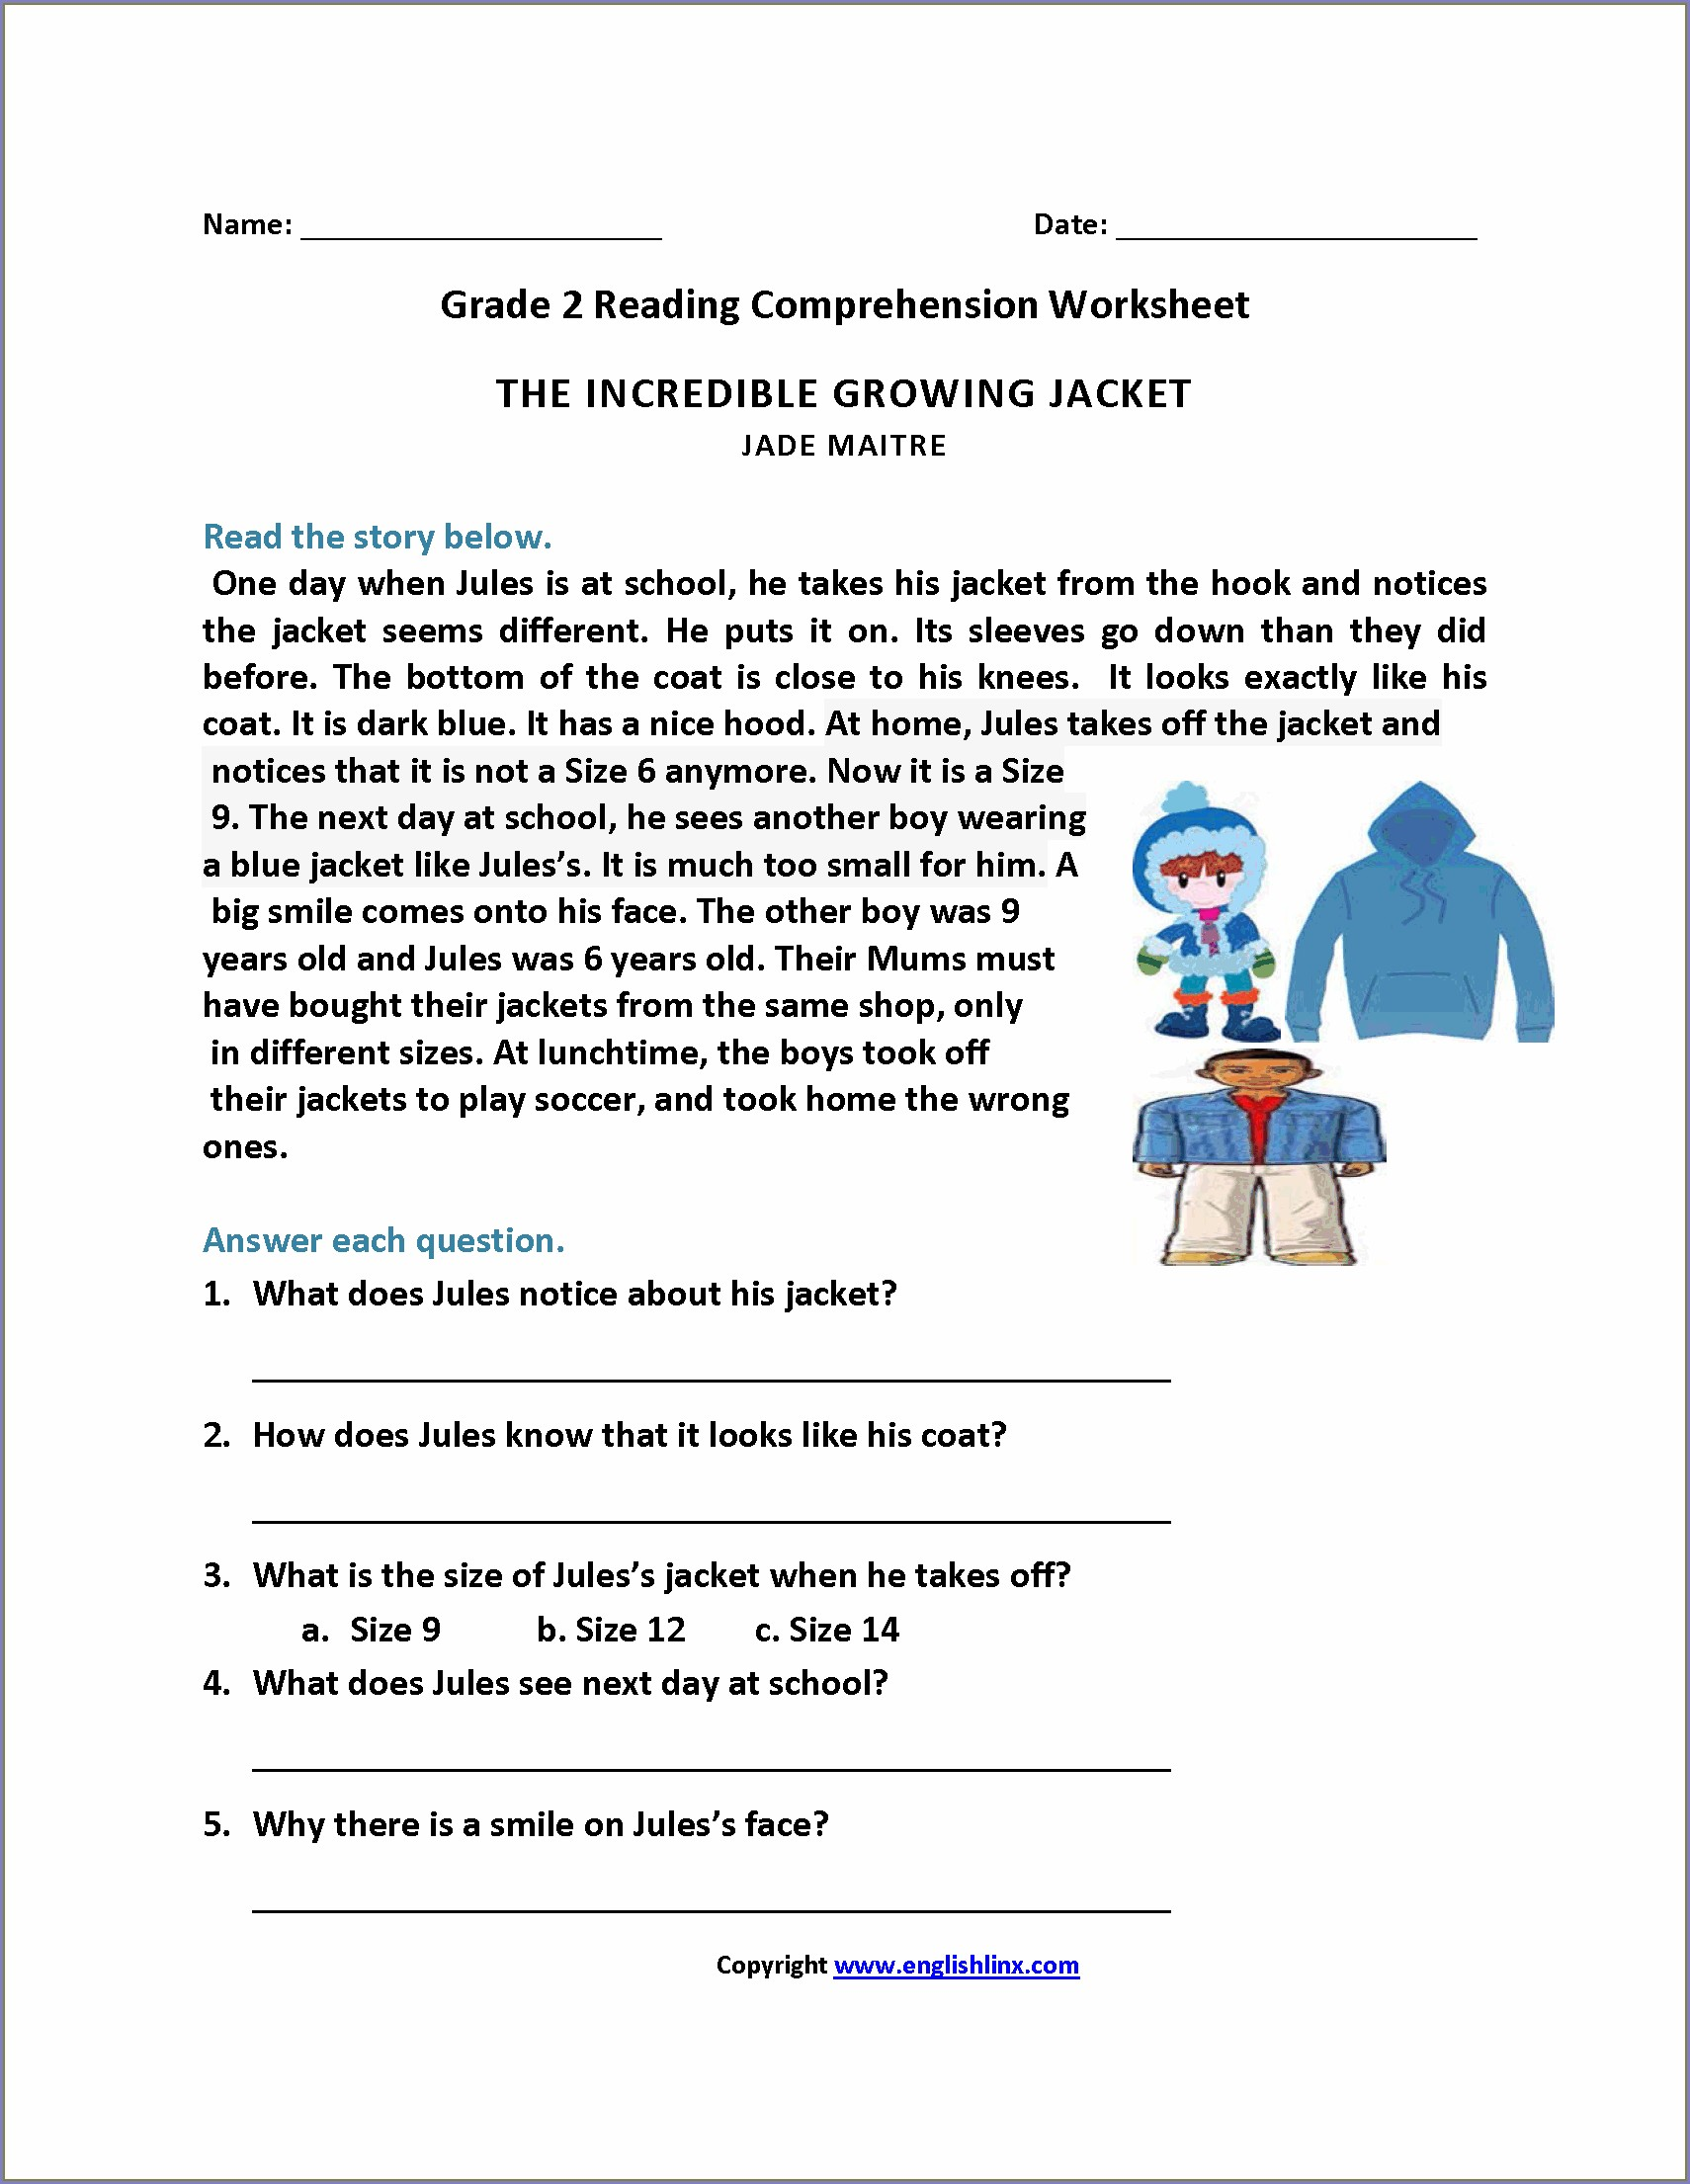 Reading Comprehension Exercises With Answers For Grade 2